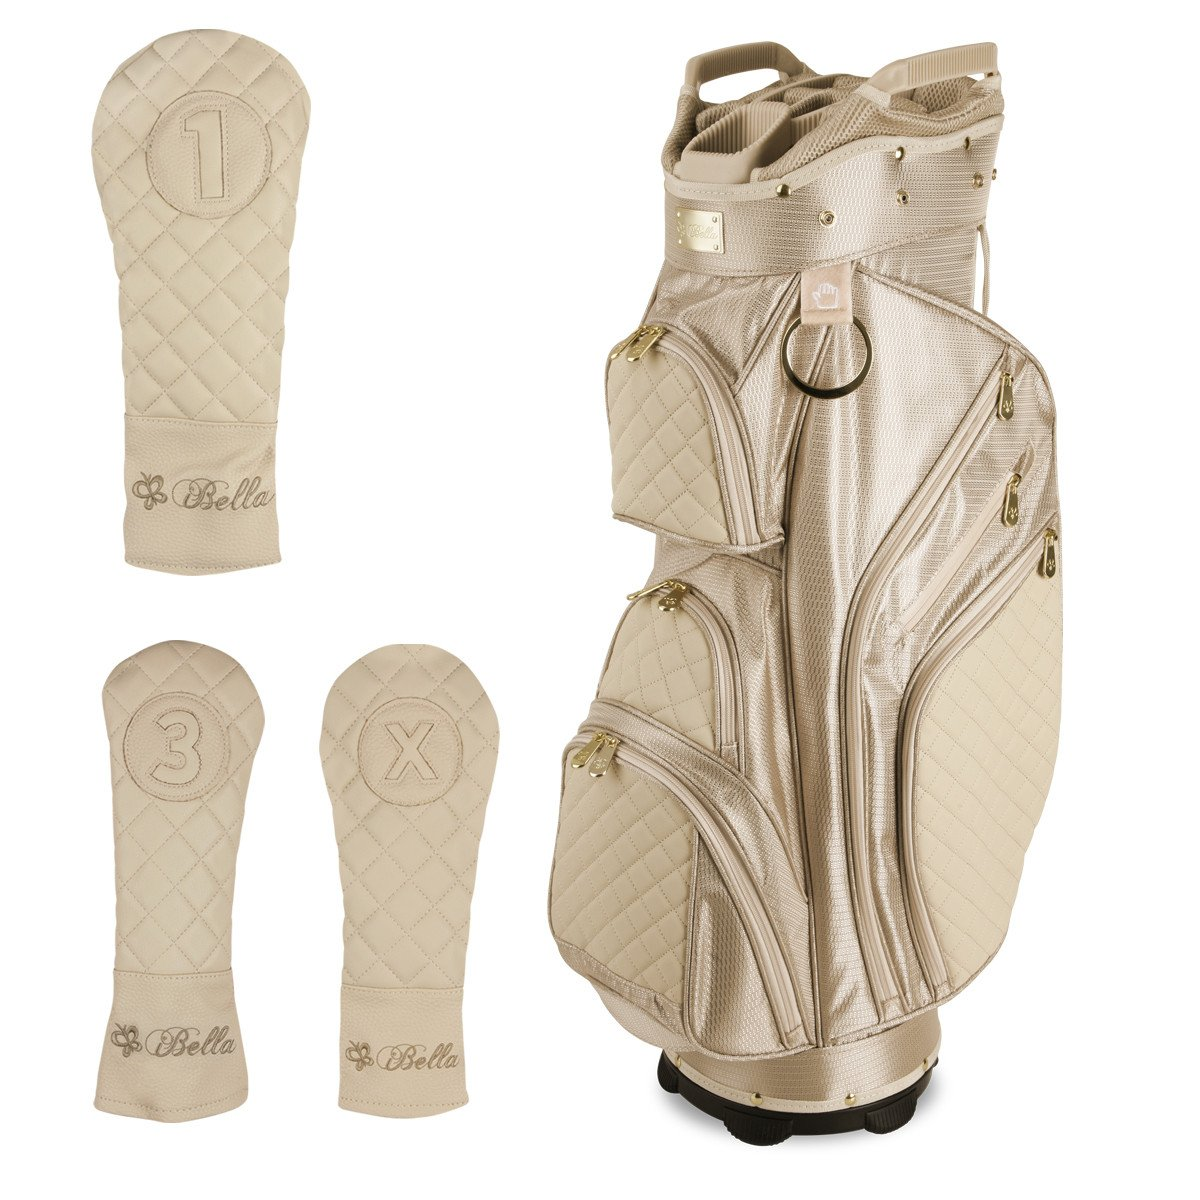 iBella Tan Ladies Golf Cart Bag (with 3 Matching Headcovers) by iBella (Image #1)